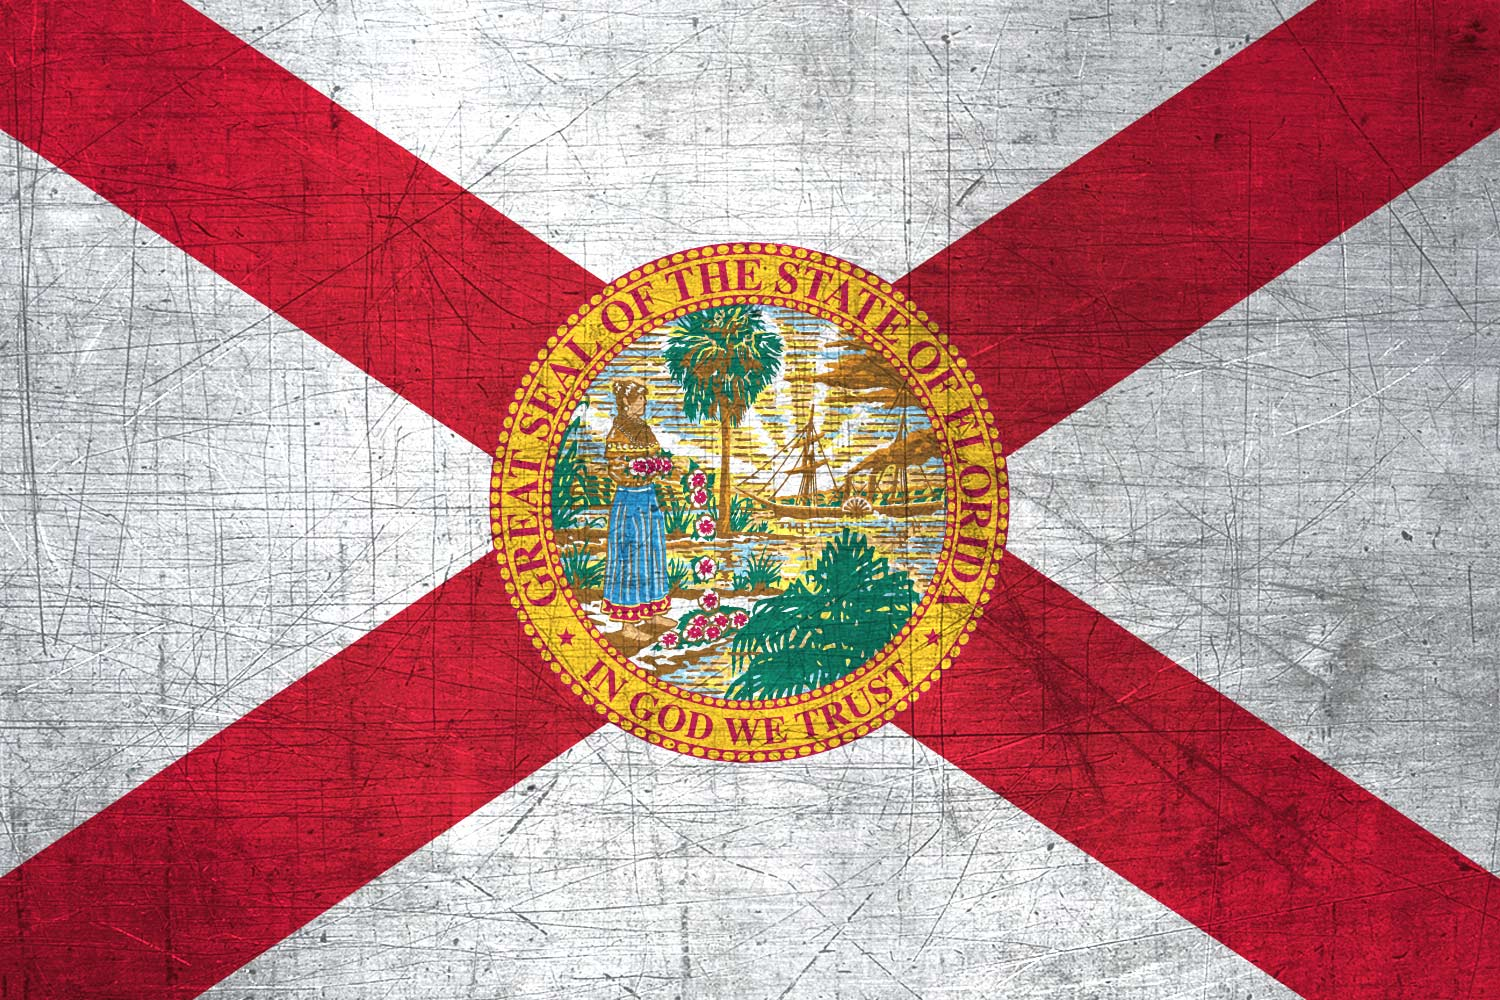 Floridian flag metal flag of florida download it for free high resolution flag of florida metal texture voltagebd Image collections